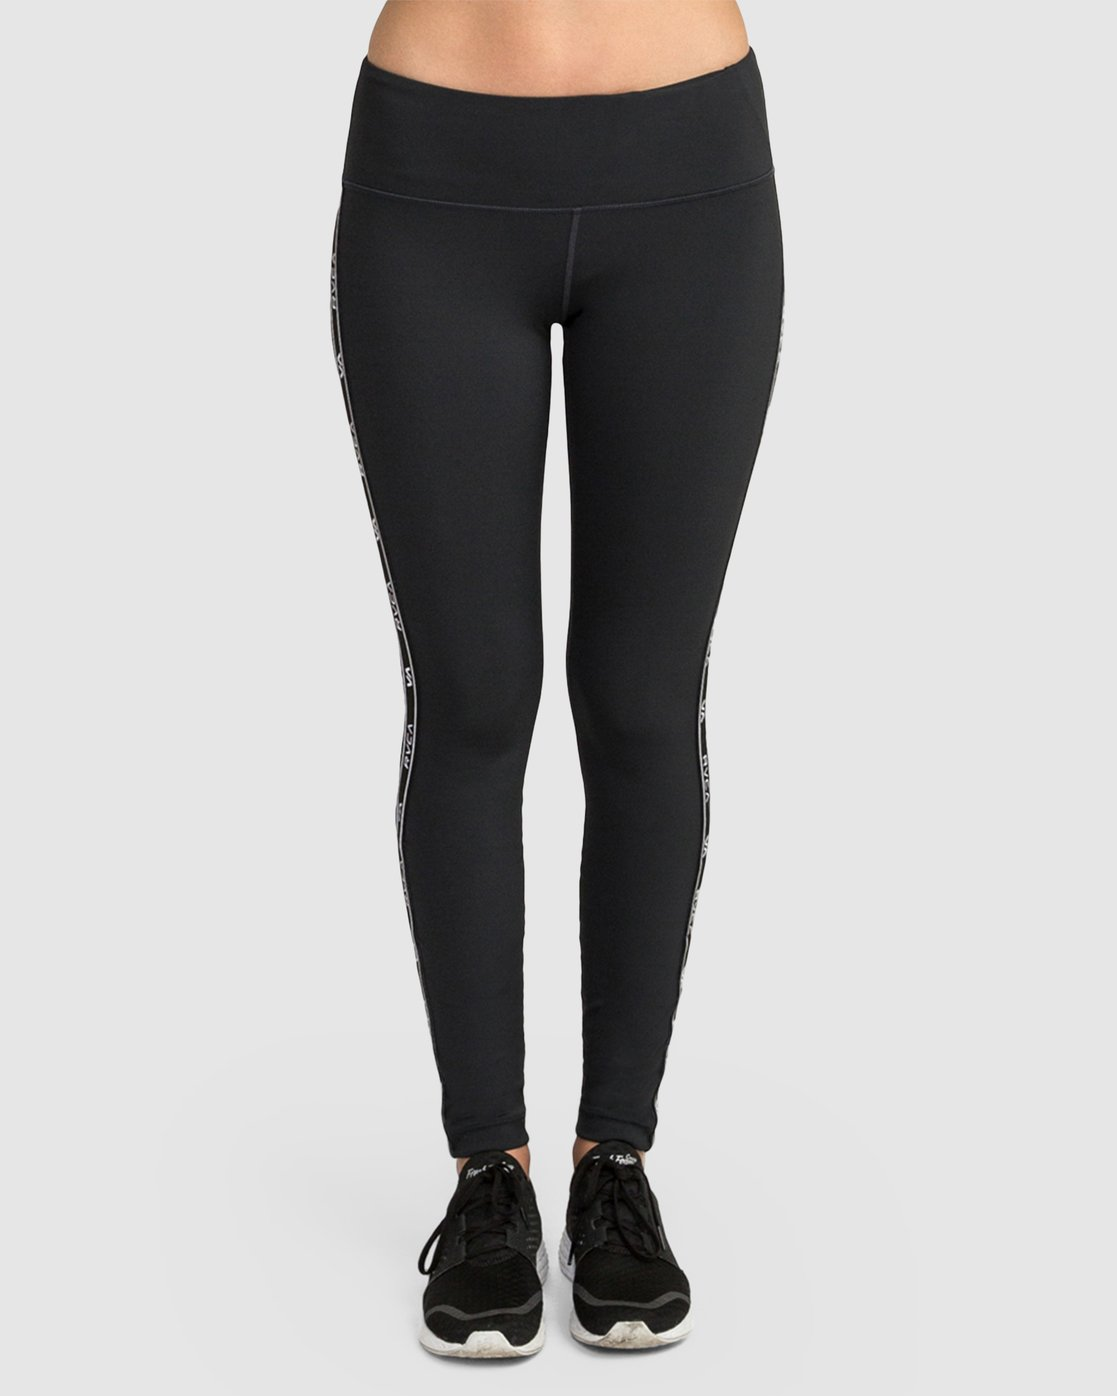 0 Recon Legging Black R481272 RVCA